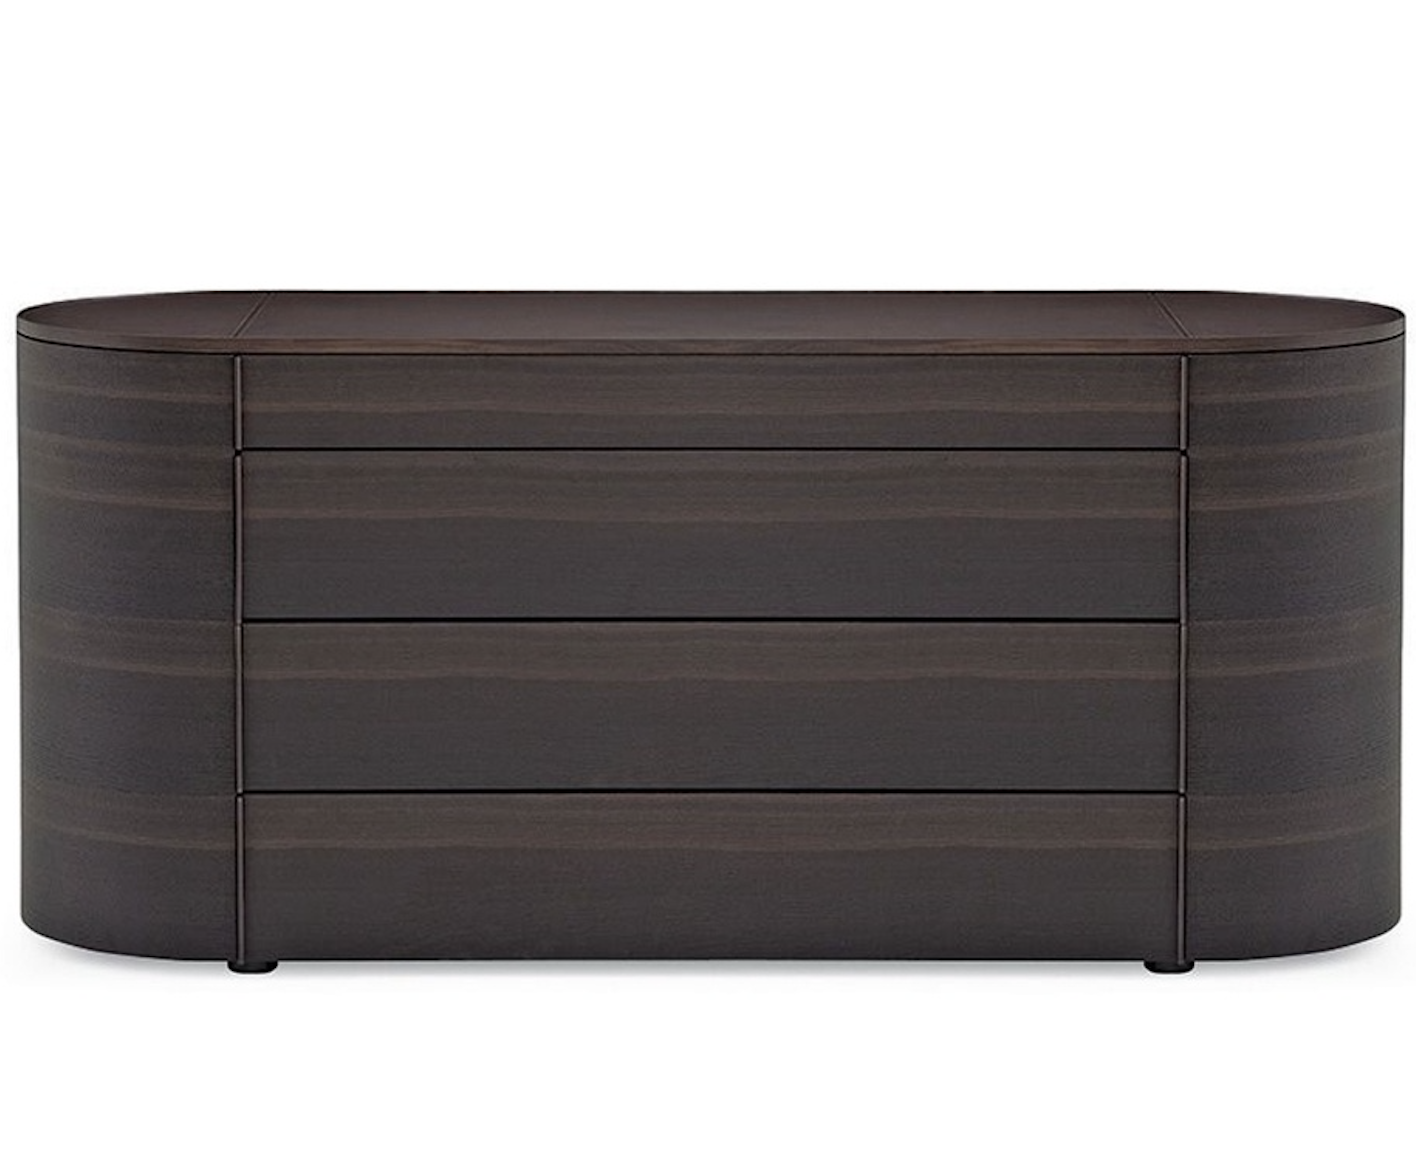 Product Image onda chest of drawers